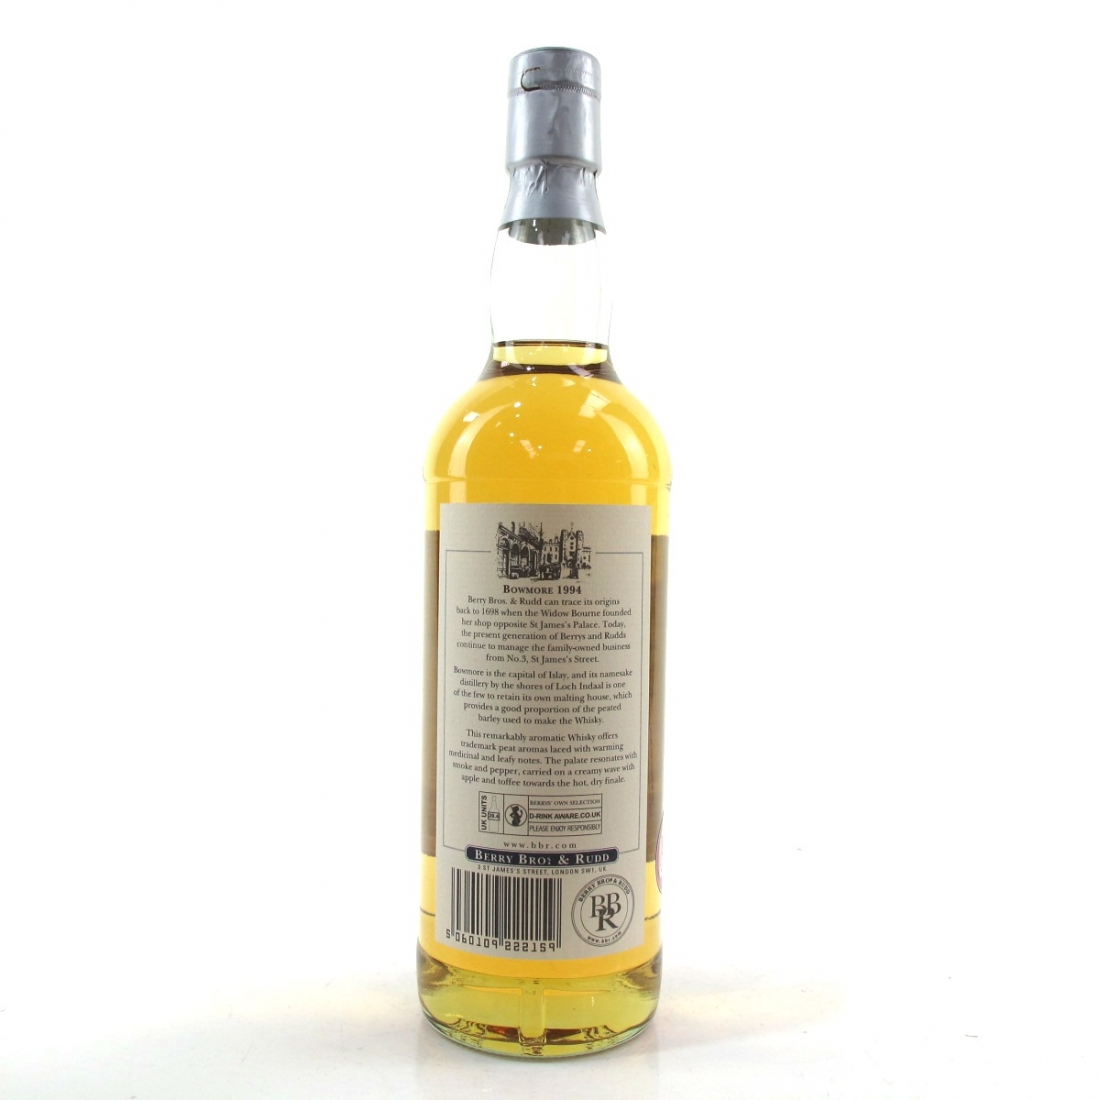 Bowmore 1994 Berry Brothers and Rudd